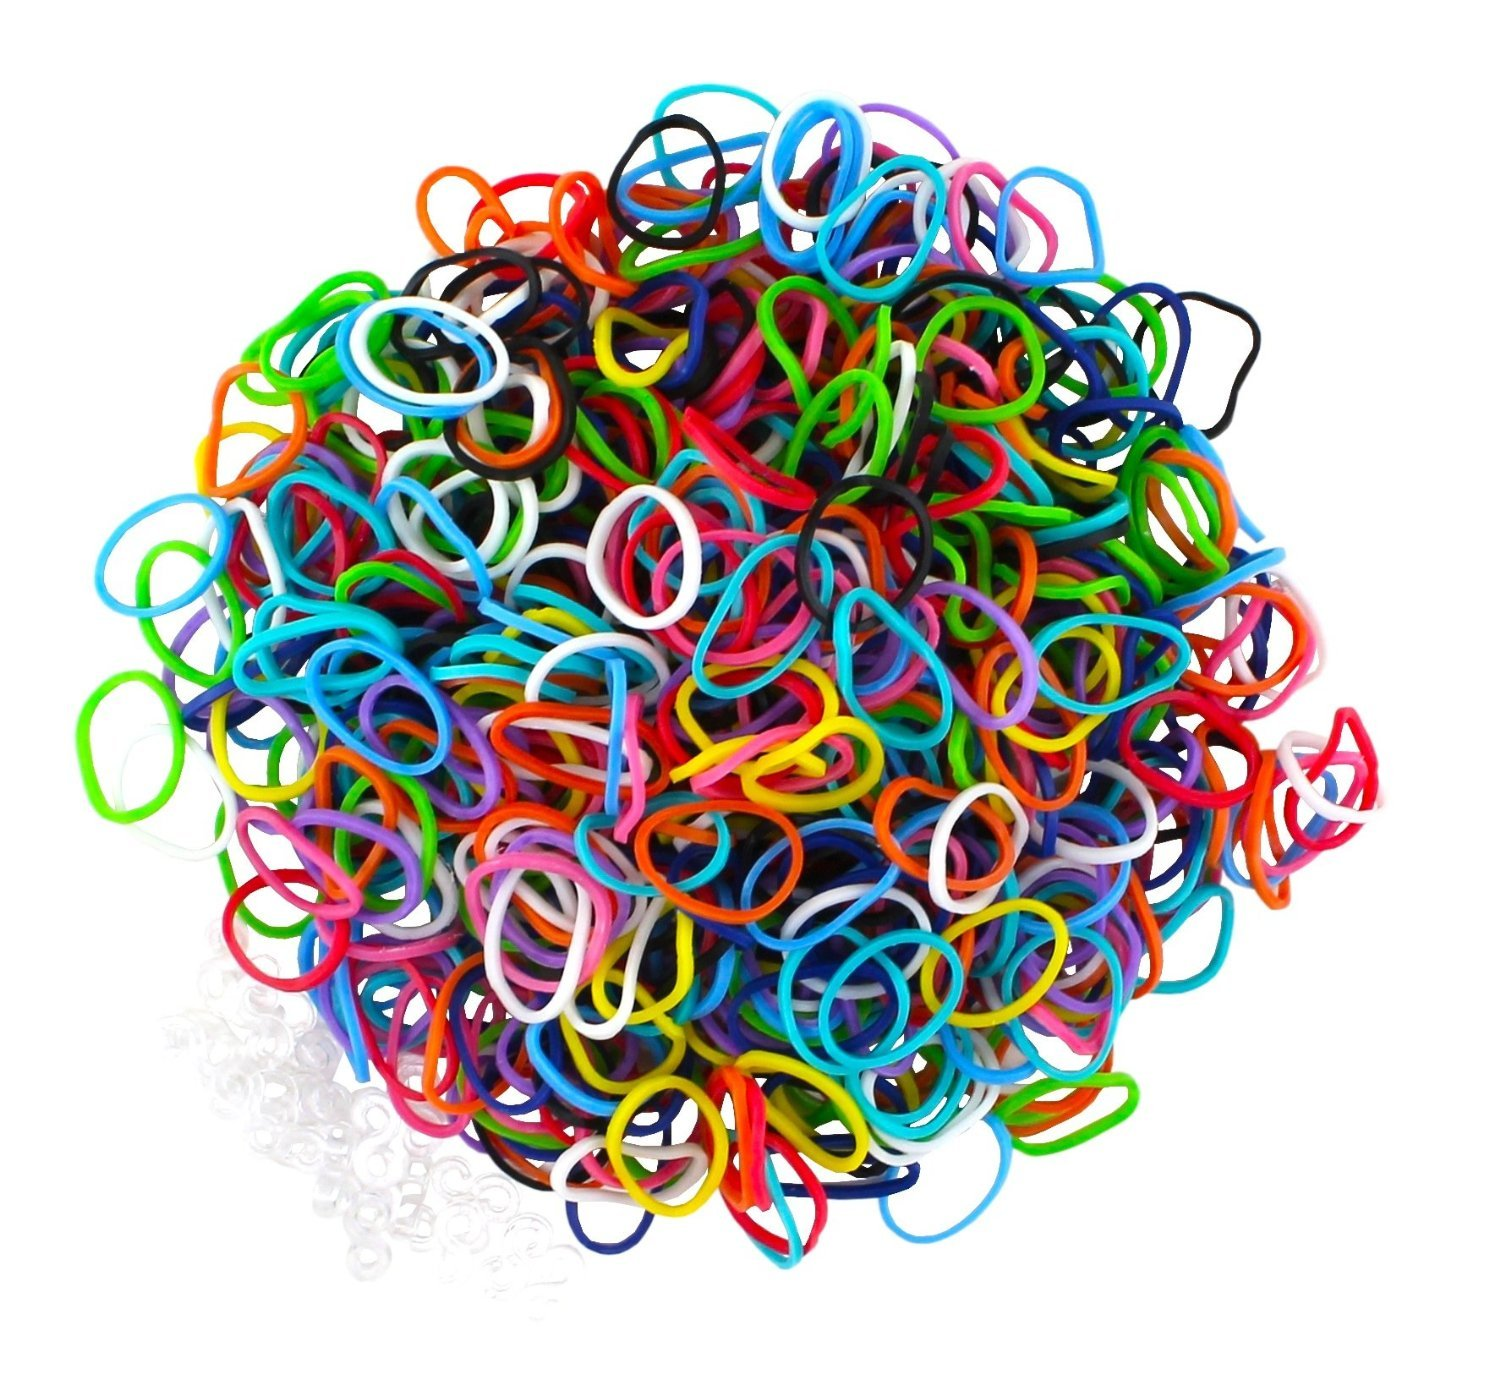 SODIAL(R) Colorful Silicone LOOM BANDS - 600 Bands & 25 S Clips!